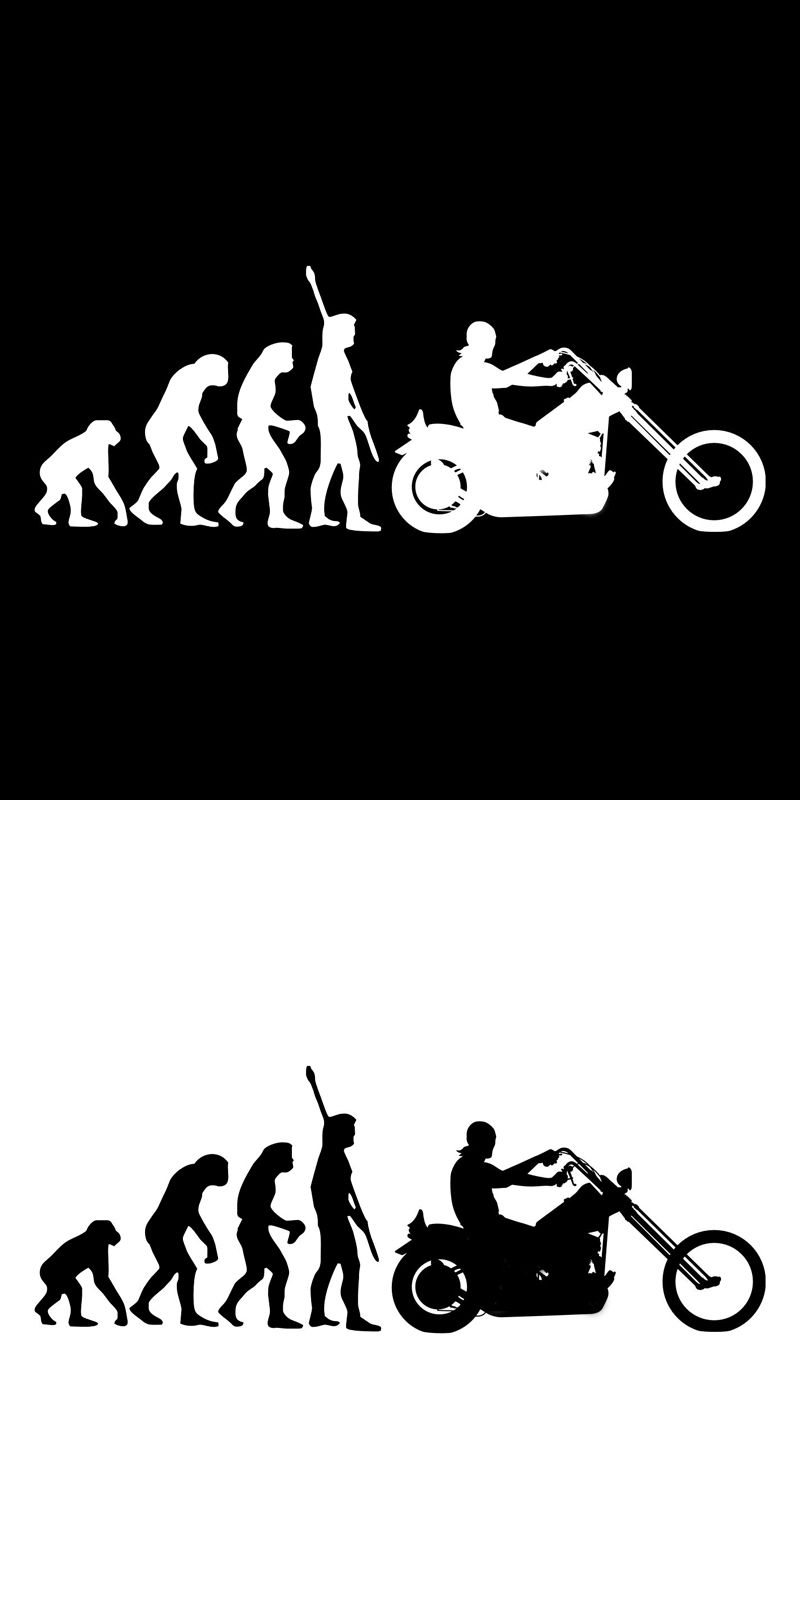 Motorcycle sticker fashion human evolution motorcycle car stickers fun reflective vinyl decals black silver